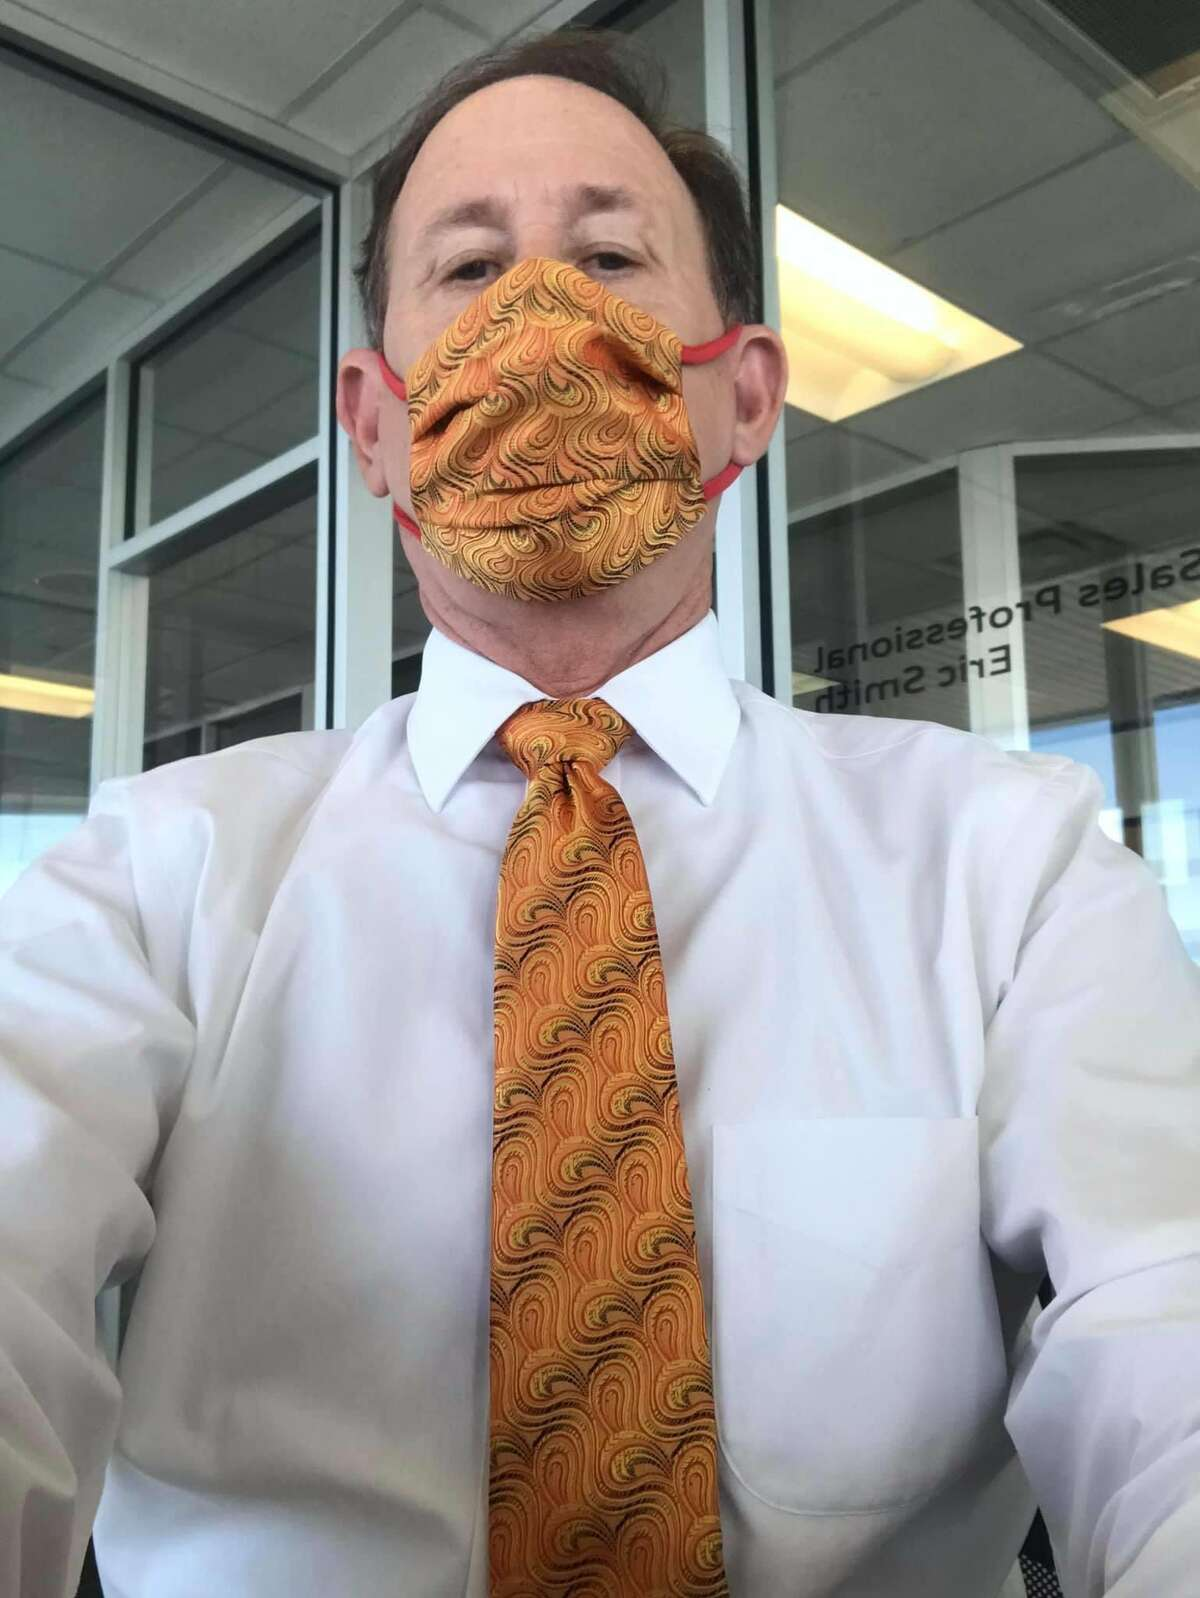 A San Antonio dad has gone viral on Twitter for his stylish ways after turning his pocket inserts into a face mask to match his work tie.